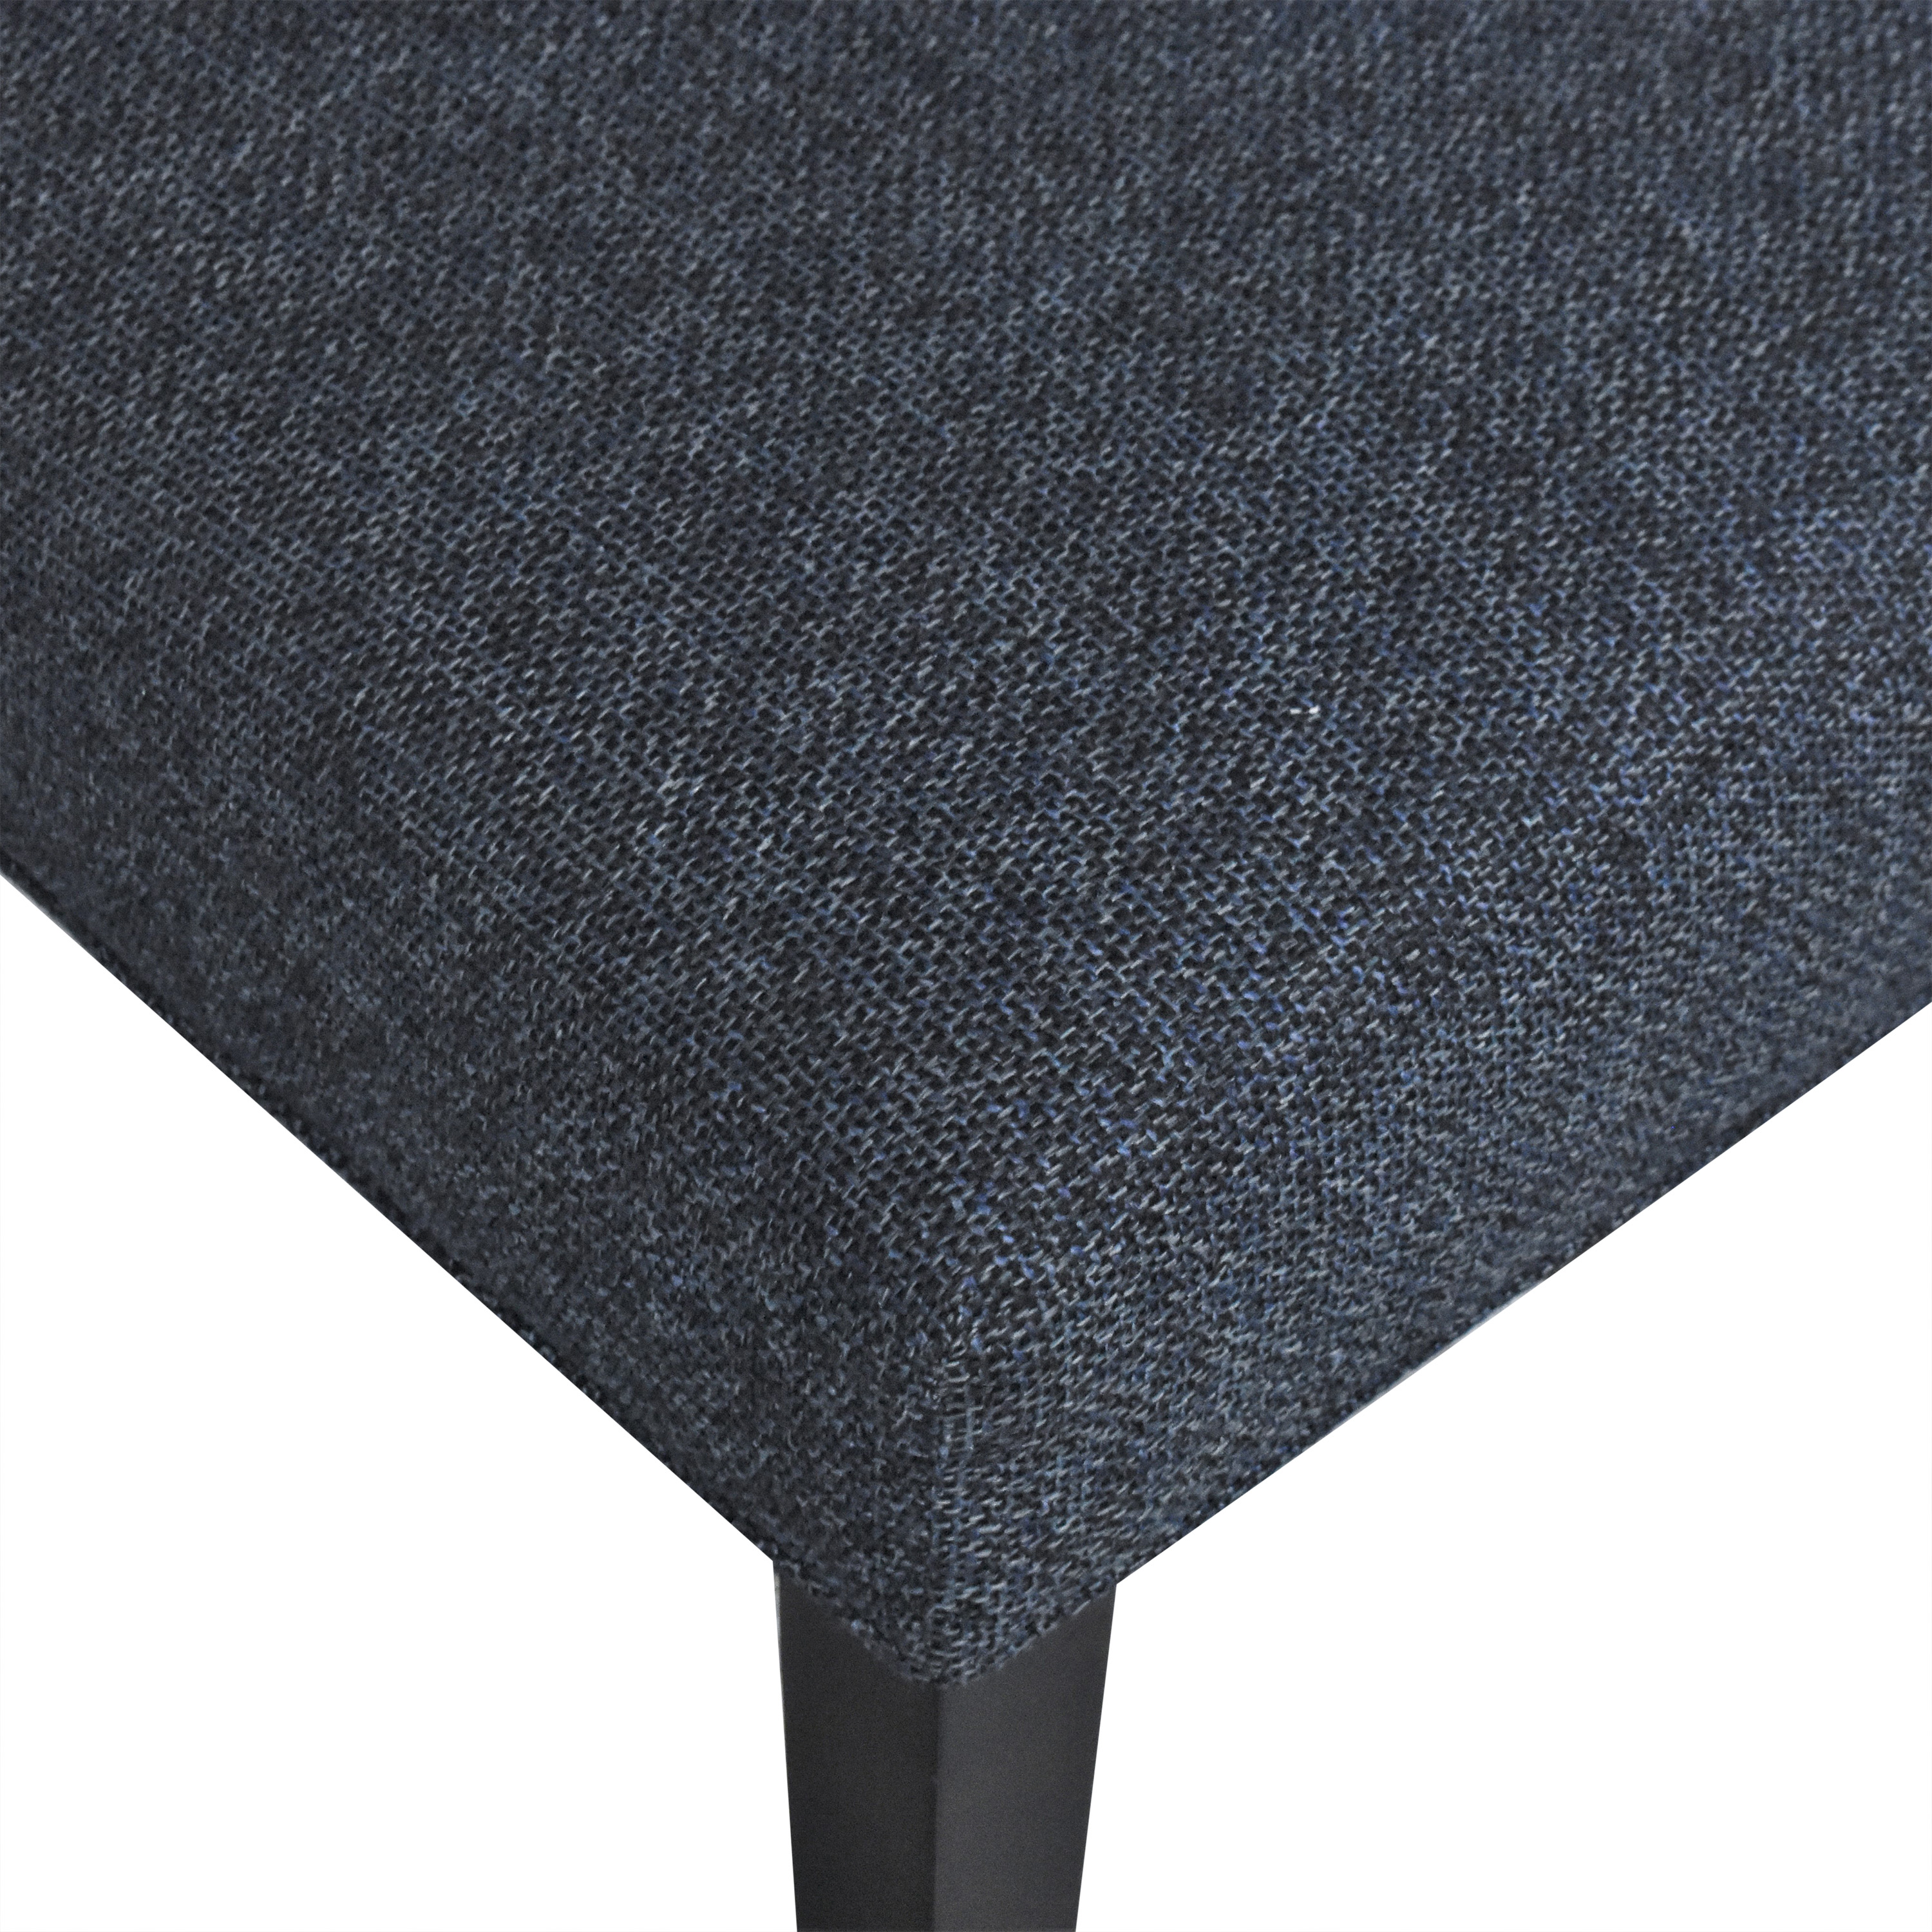 Crate & Barrel Crate & Barrel Miles Upholstered Dining Chairs Dining Chairs